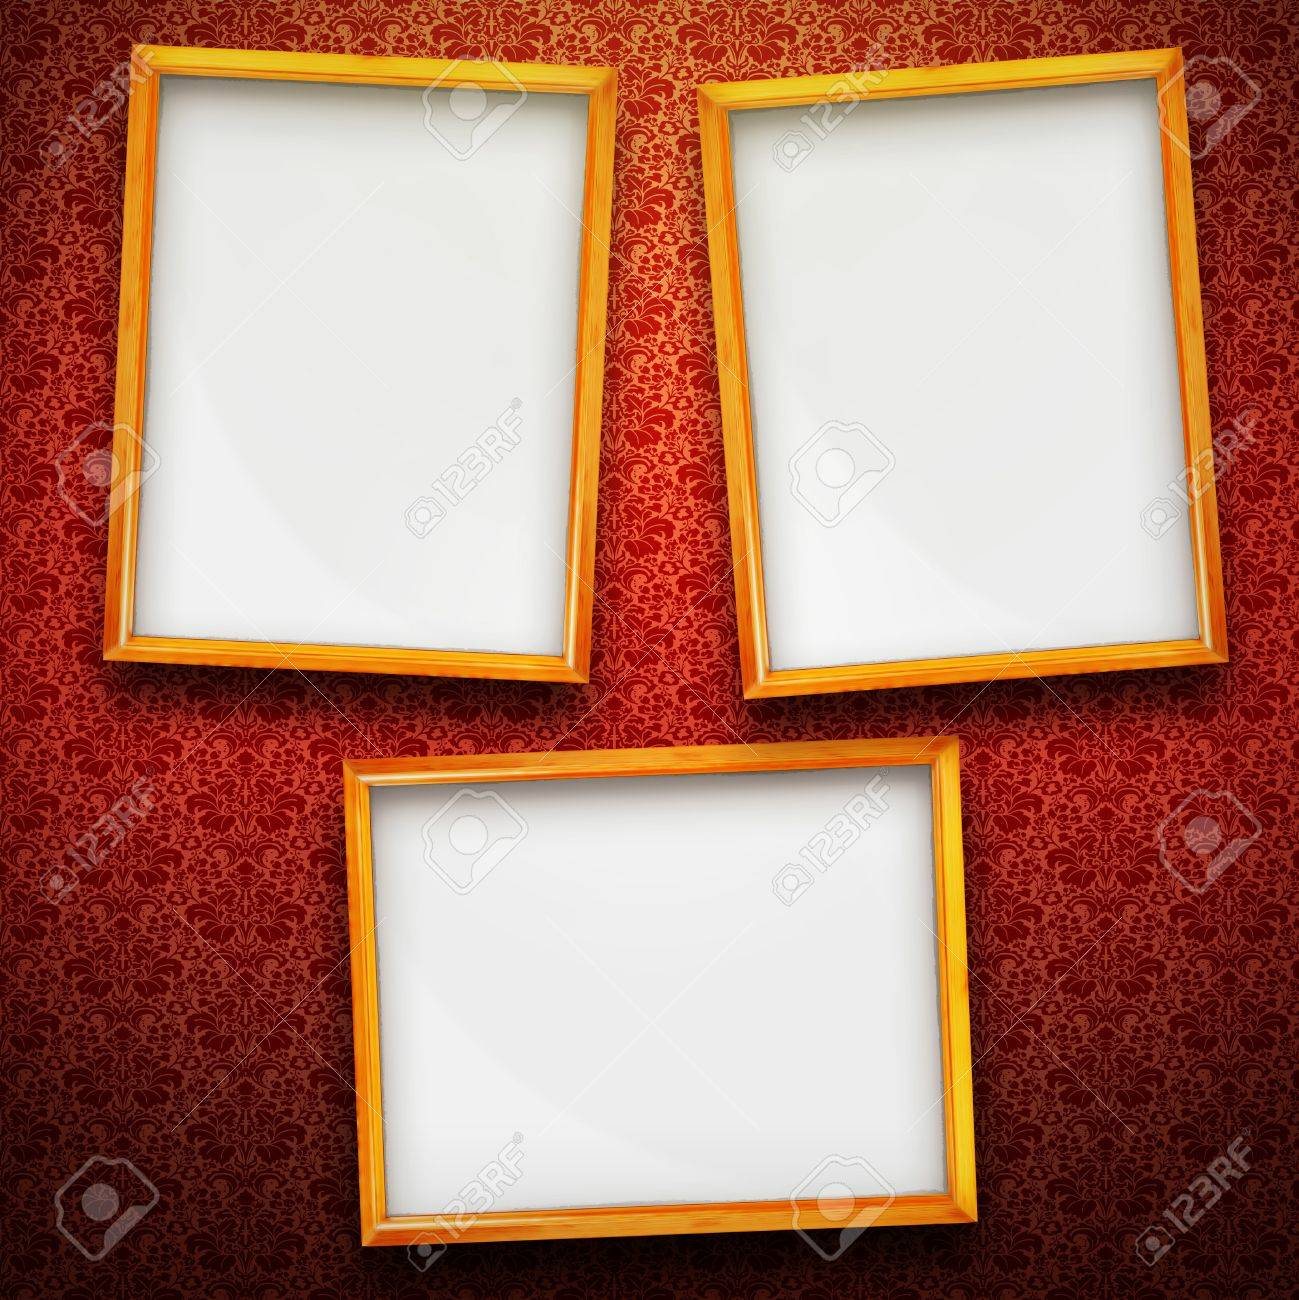 Three big picture frames in gold on red vintage background Stock Photo - 17154358